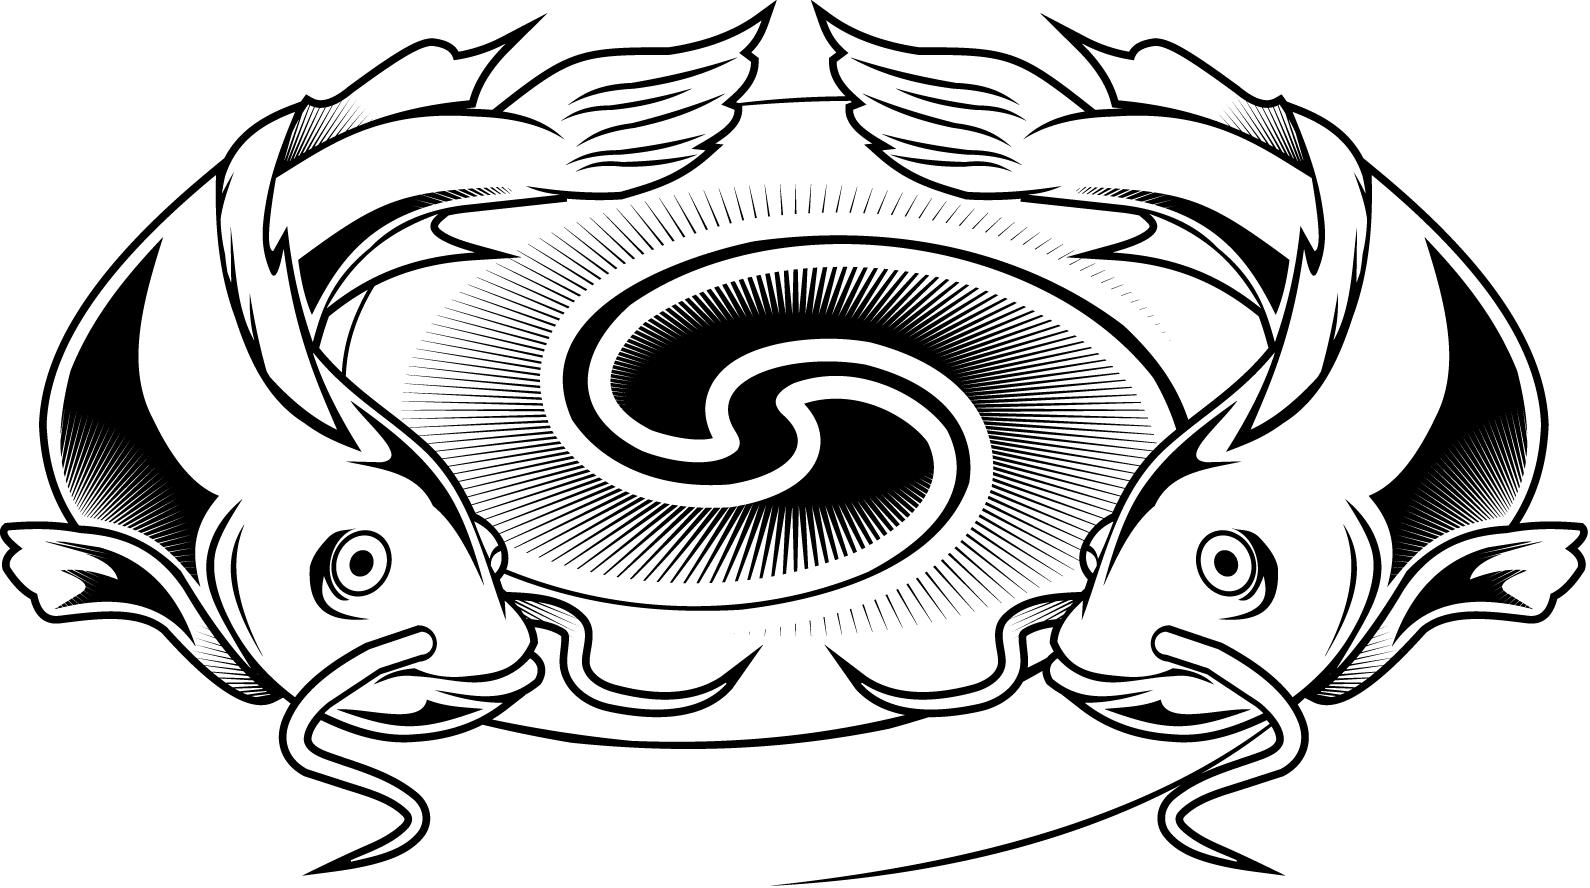 colouring pages of a catfish tattoo design for kids - Coloring ...